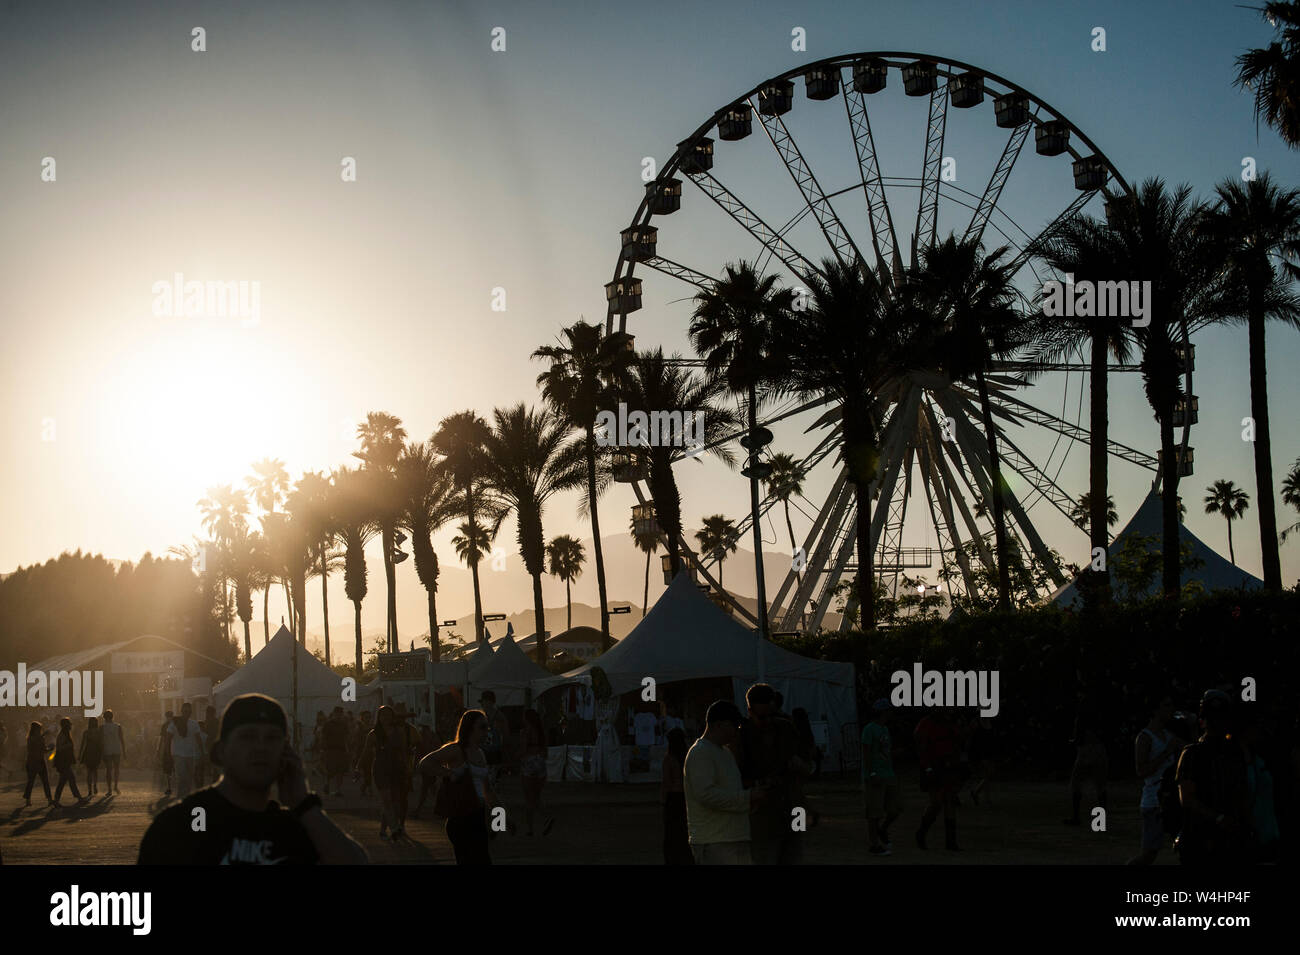 Coachella Ferris Wheel High Resolution Stock Photography And Images Alamy